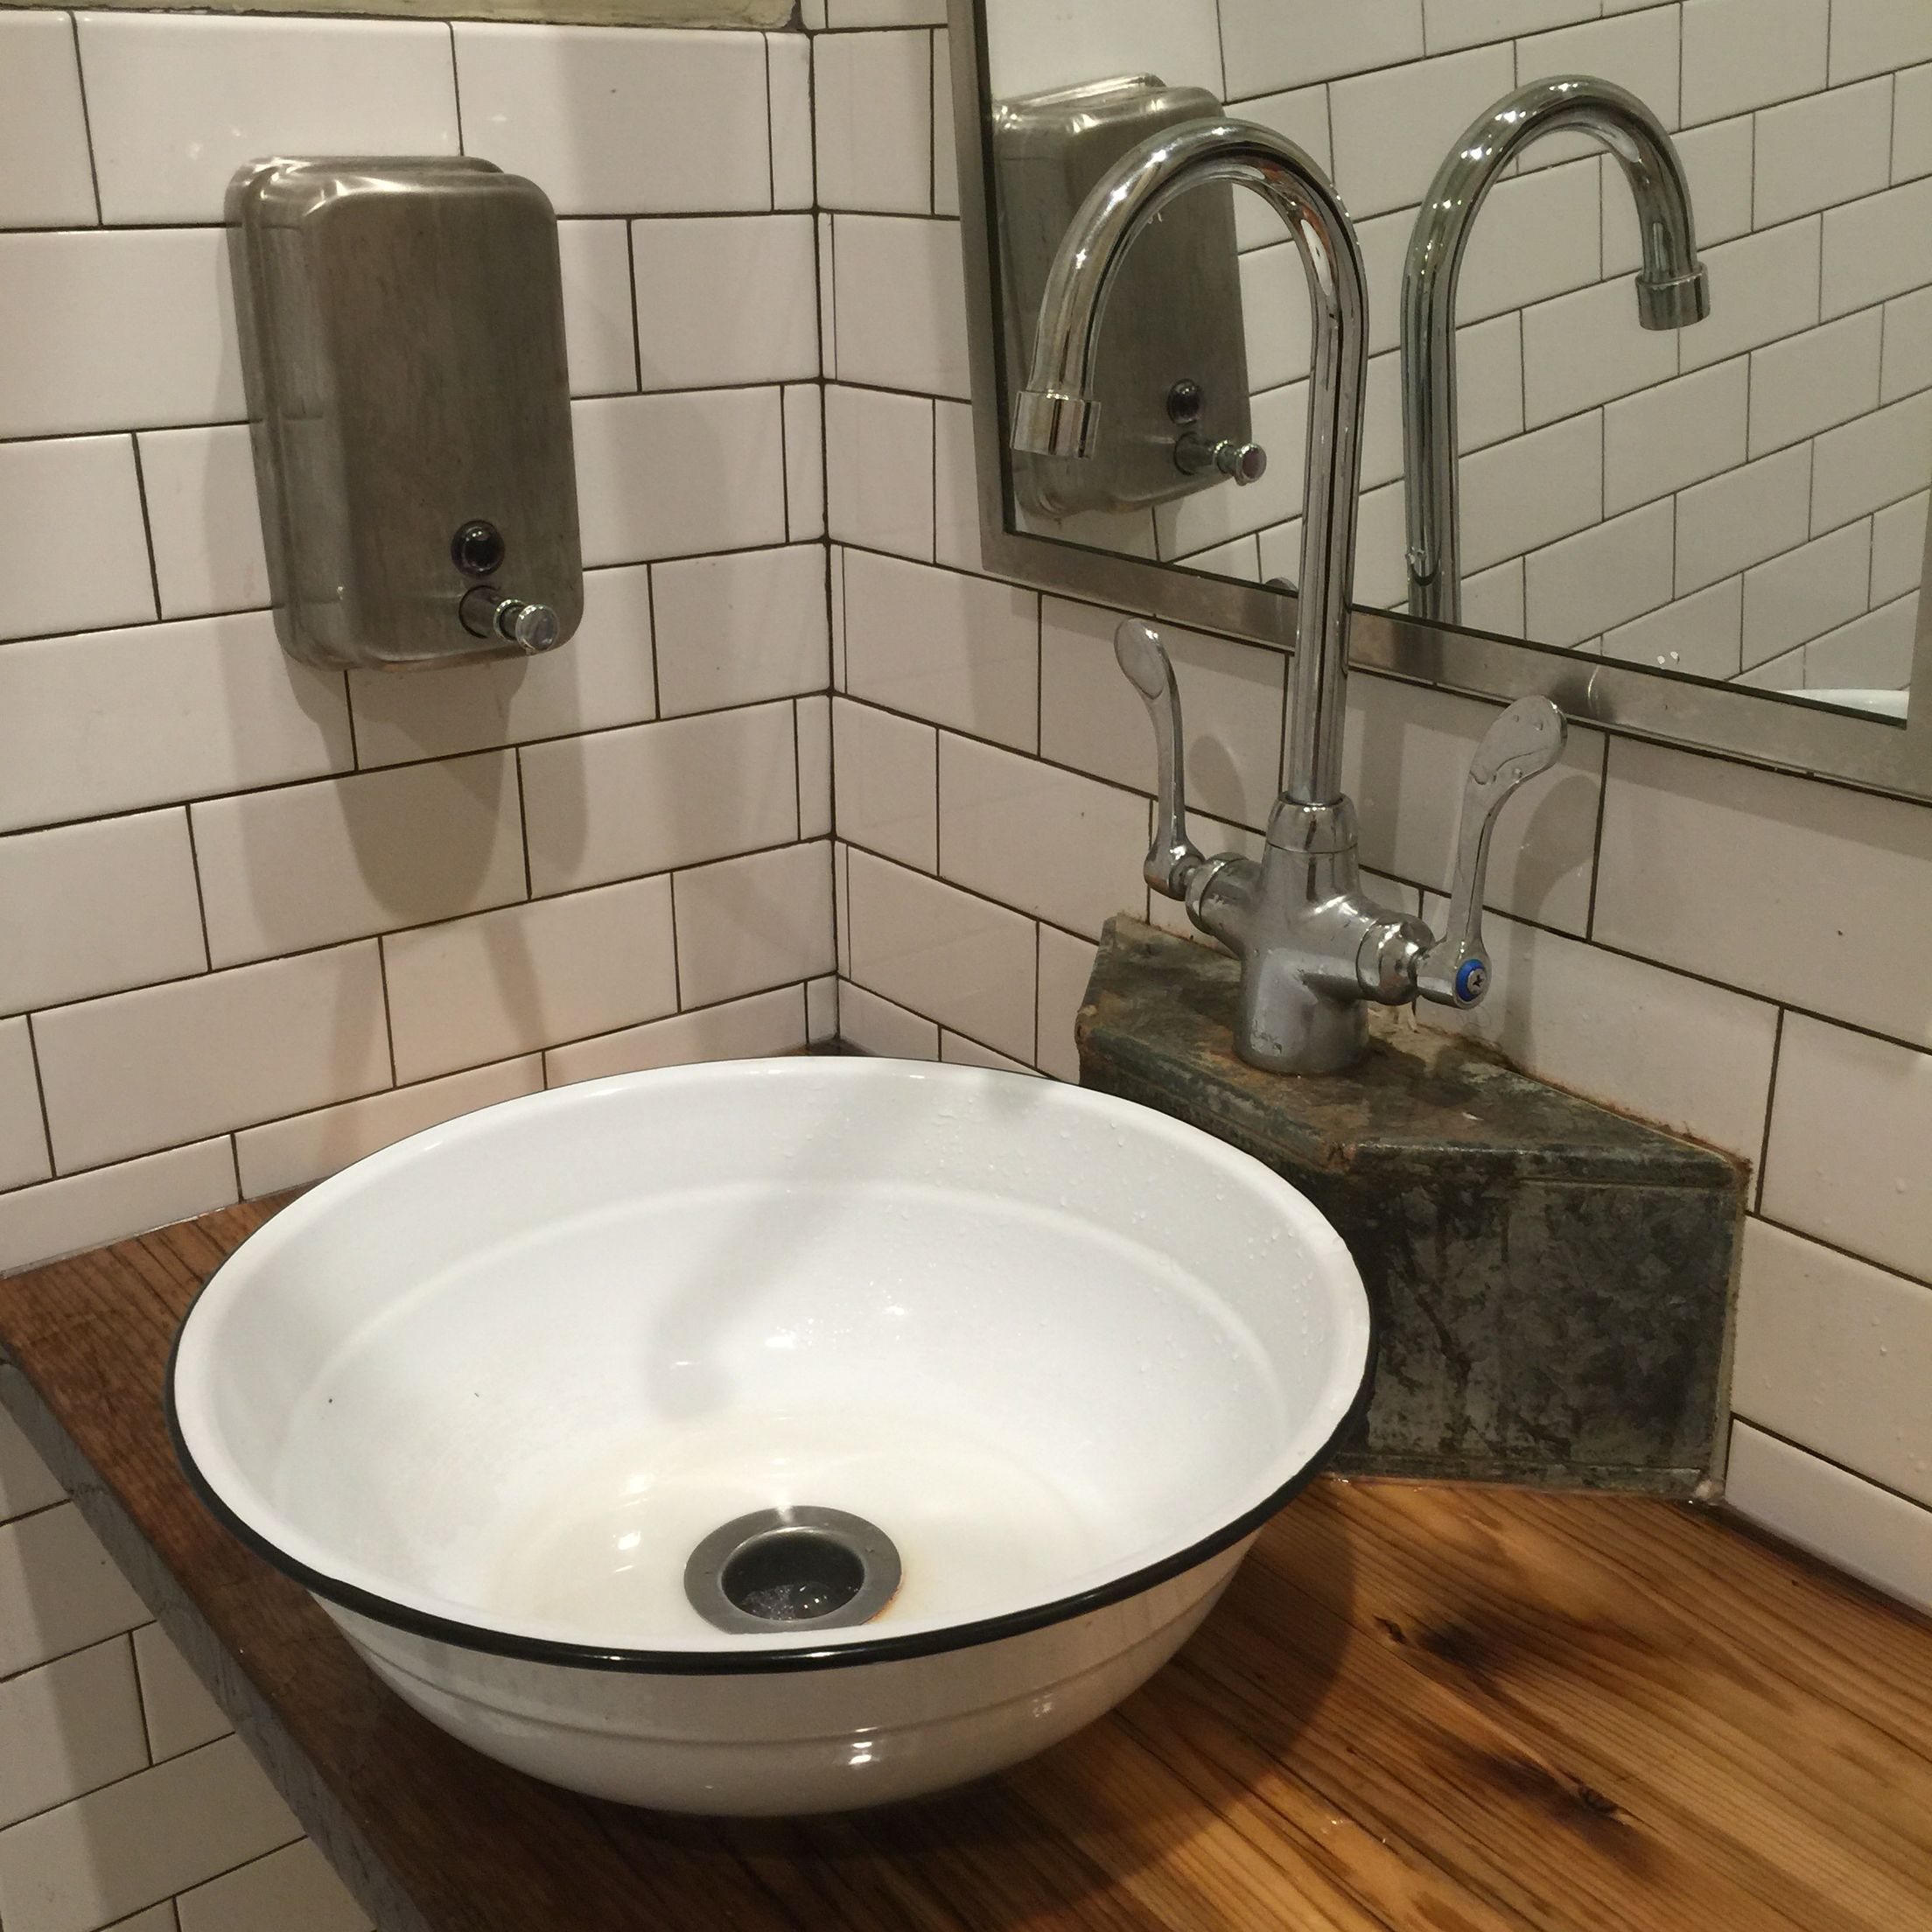 Enamelware Bowl As A Sink Bathroom Sink Diy Enamelware Decor